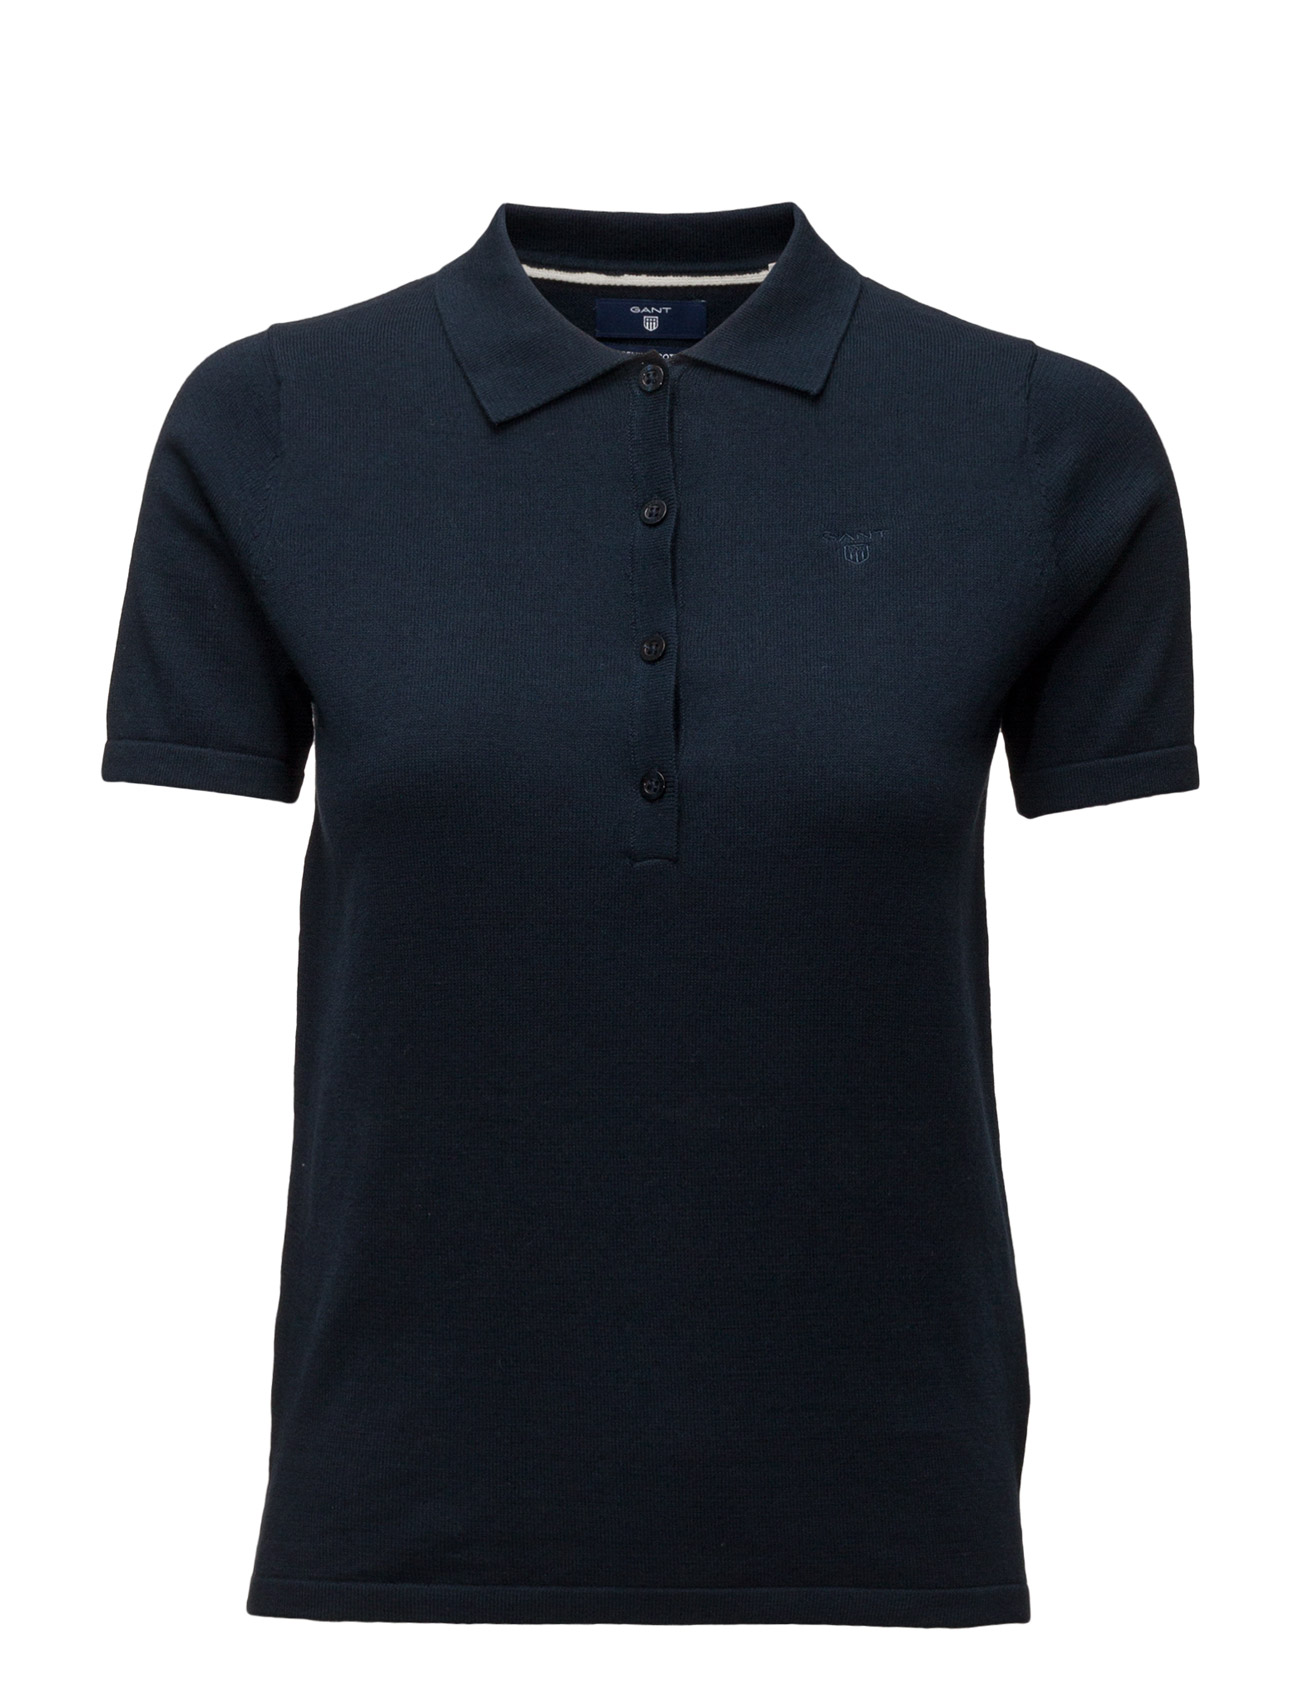 soft cotton polo shirt marine 400 kr gant